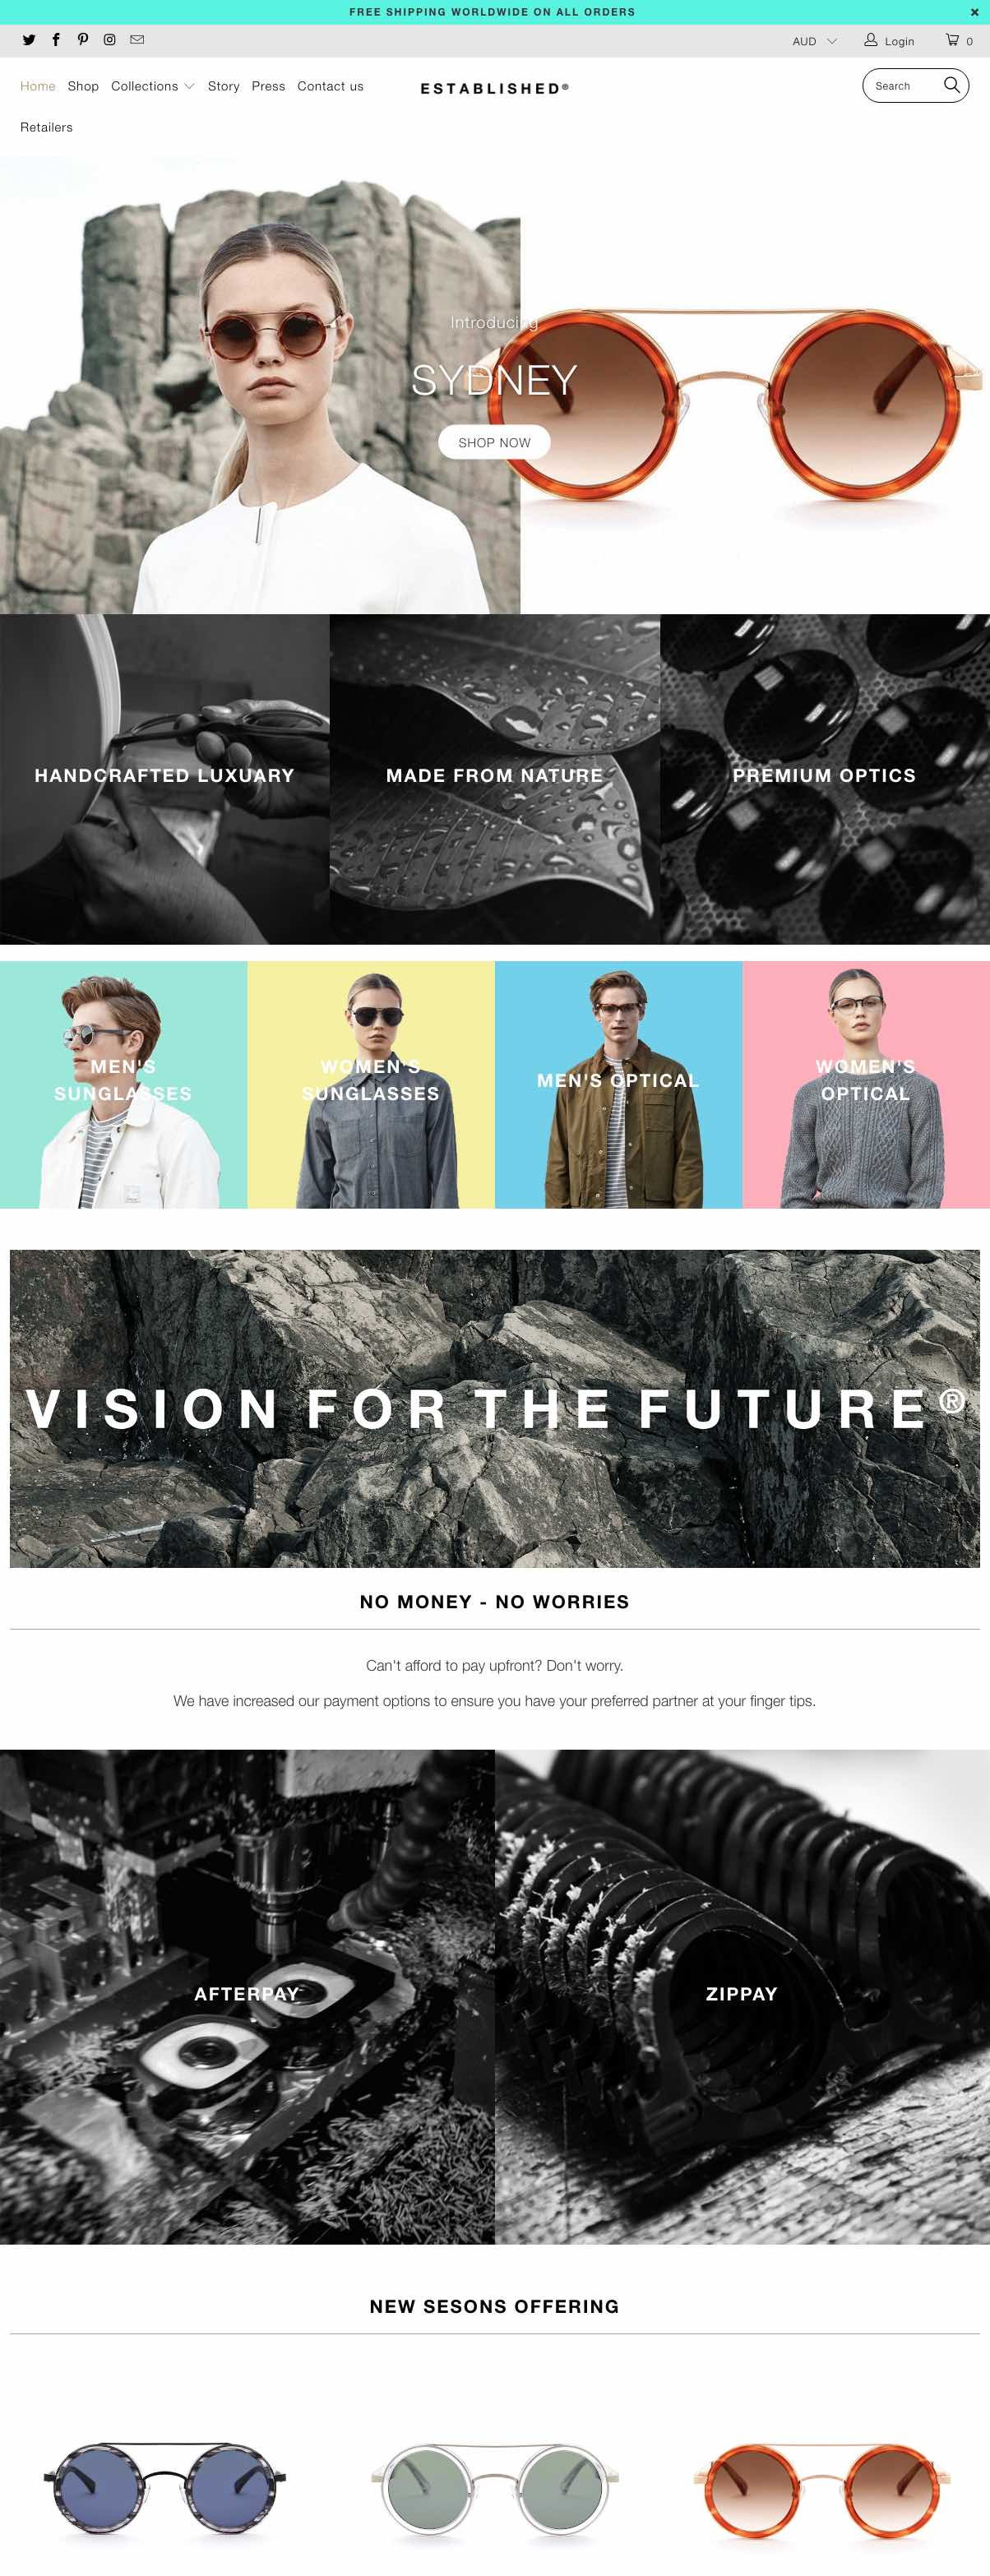 Established Eyewear